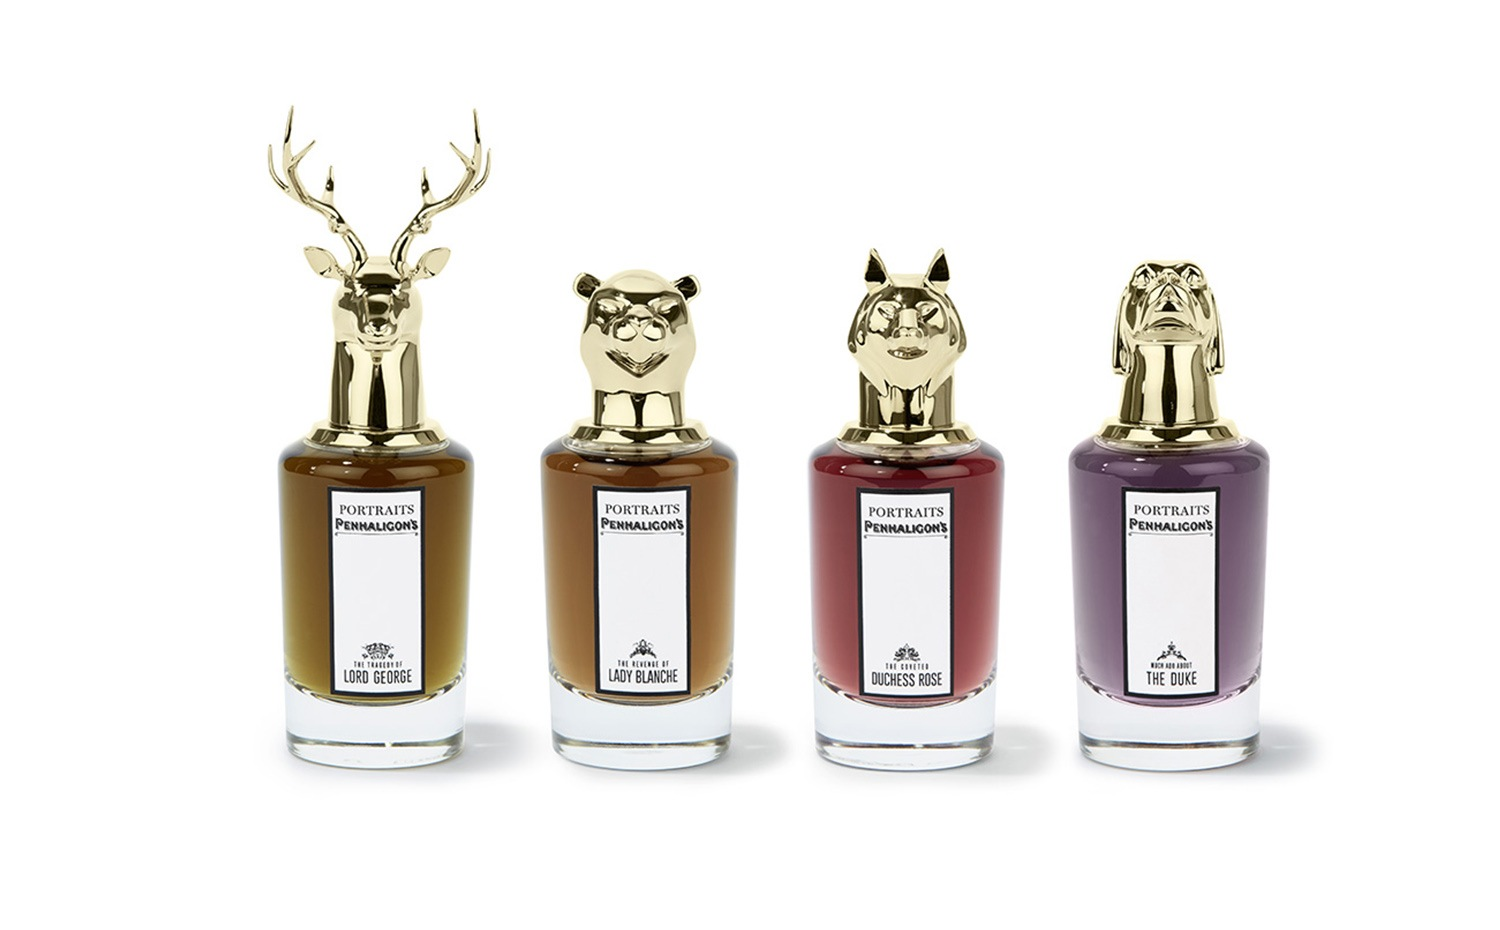 Penhaligon's: Portraits - The Revenge of Lady Blanche